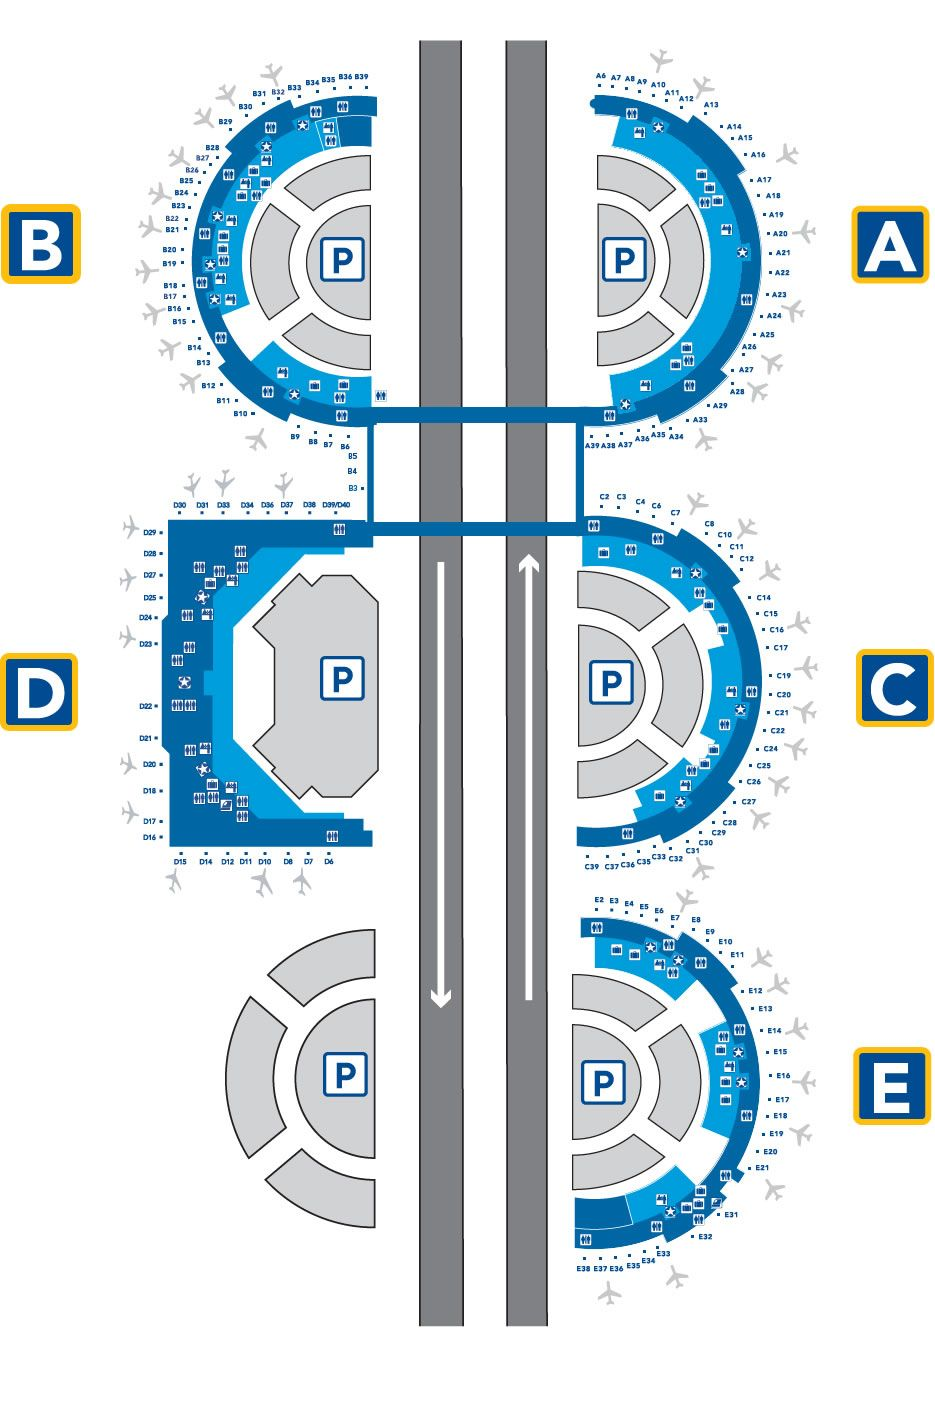 Map Of Dfw Airport Terminals DFW Airport Terminal Layout. One of the easiest airport to